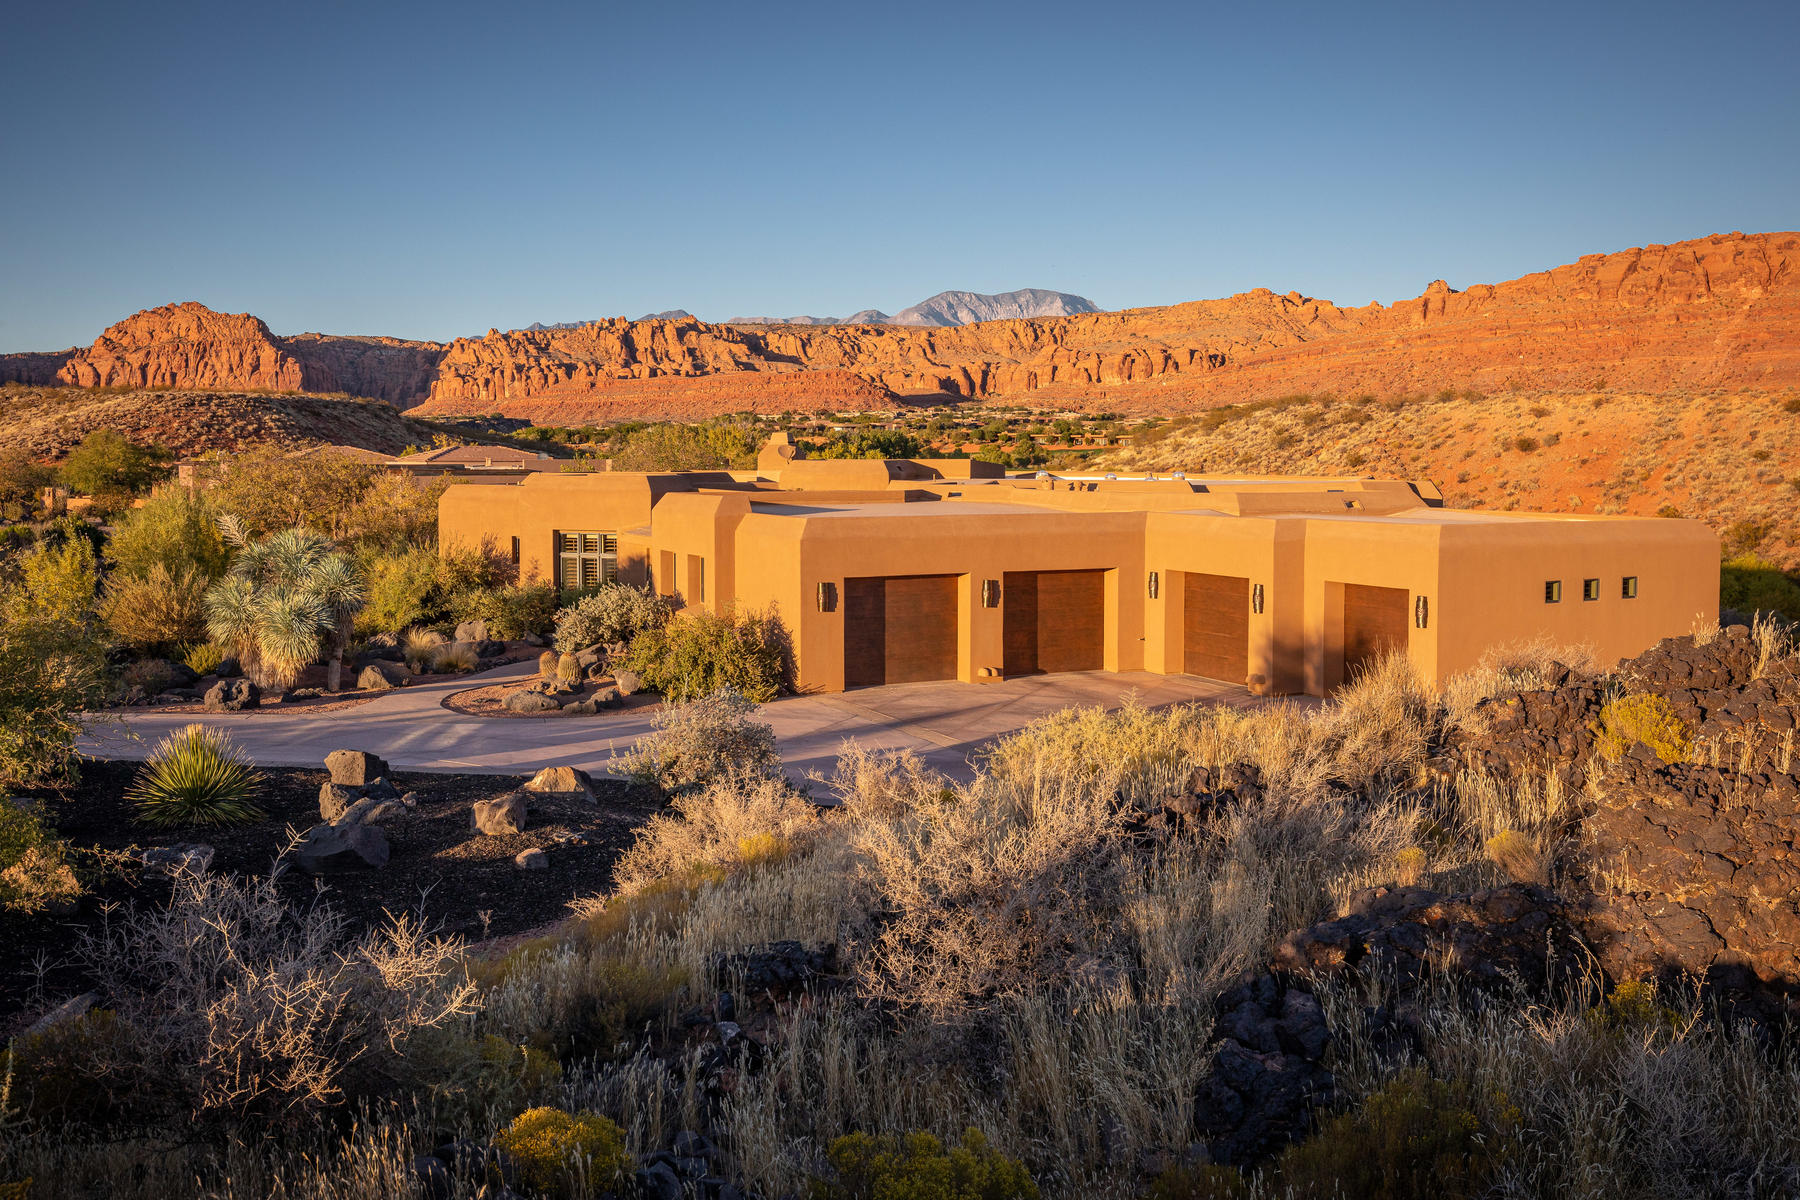 Single Family Homes for Sale at Living Easy in Entrada 2688 N Chaco Trail, St. George, Utah 84770 United States